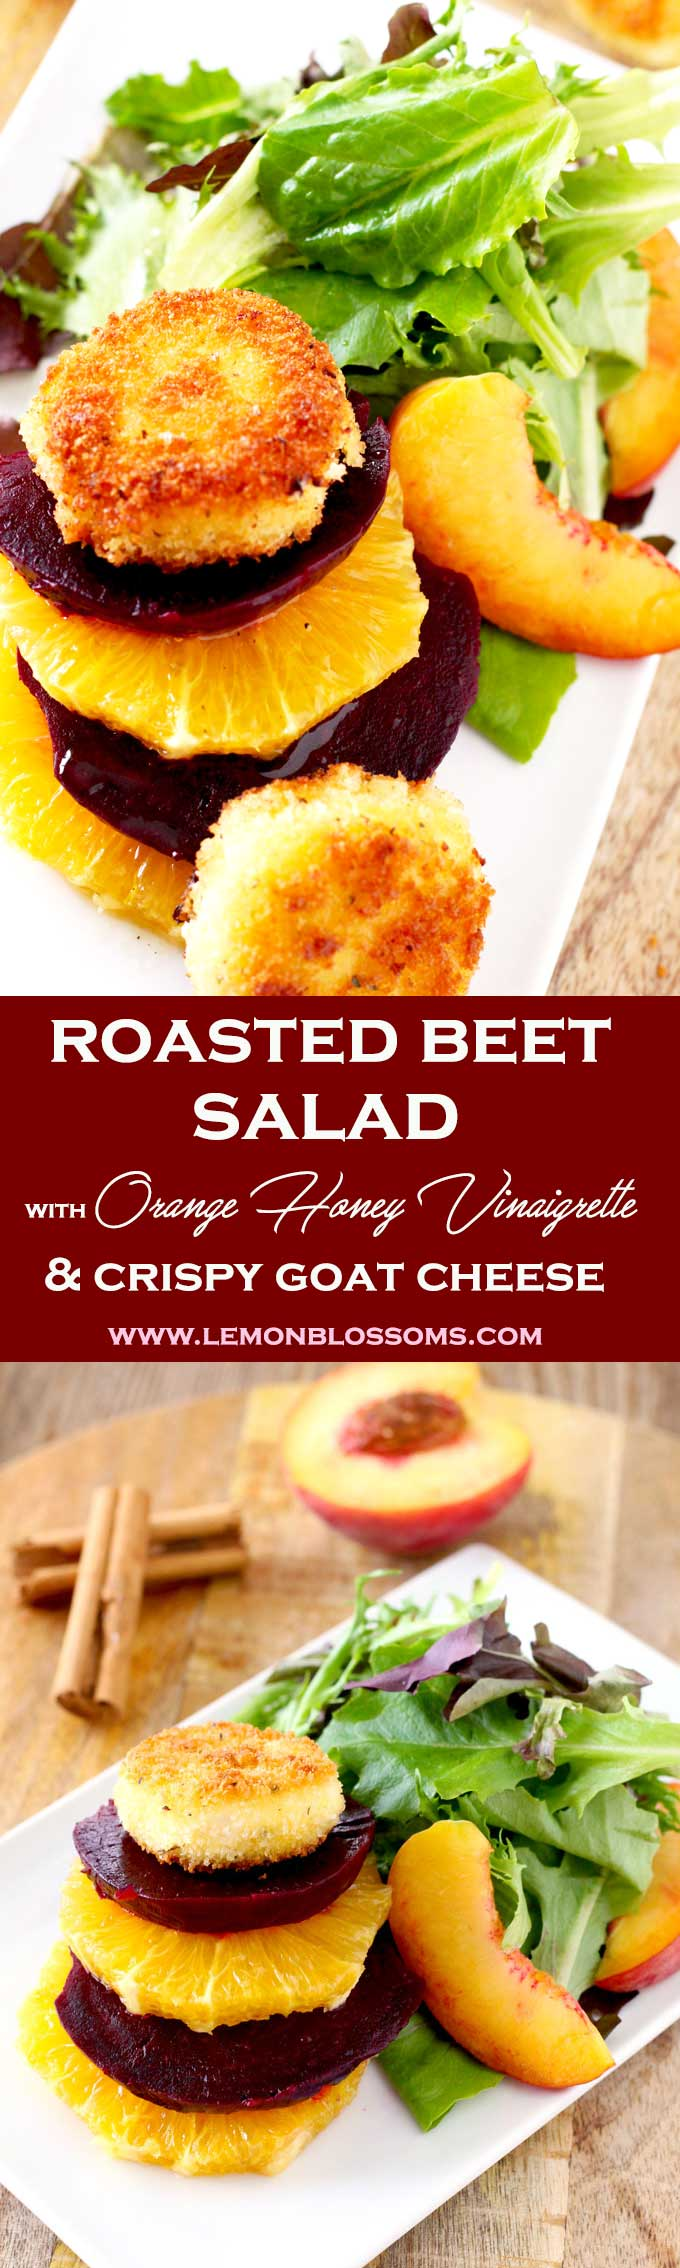 This Roasted Beet Salad is amazing! Tossed in a delicious Orange Honey Vinaigrette with oranges, peaches and mixed greens. Topped with crispy and golden goat cheese coins that are super creamy inside! Perfect for special occasion or any day of the week! #salad #roastedbeets #beets #goatcheese #crispycheese